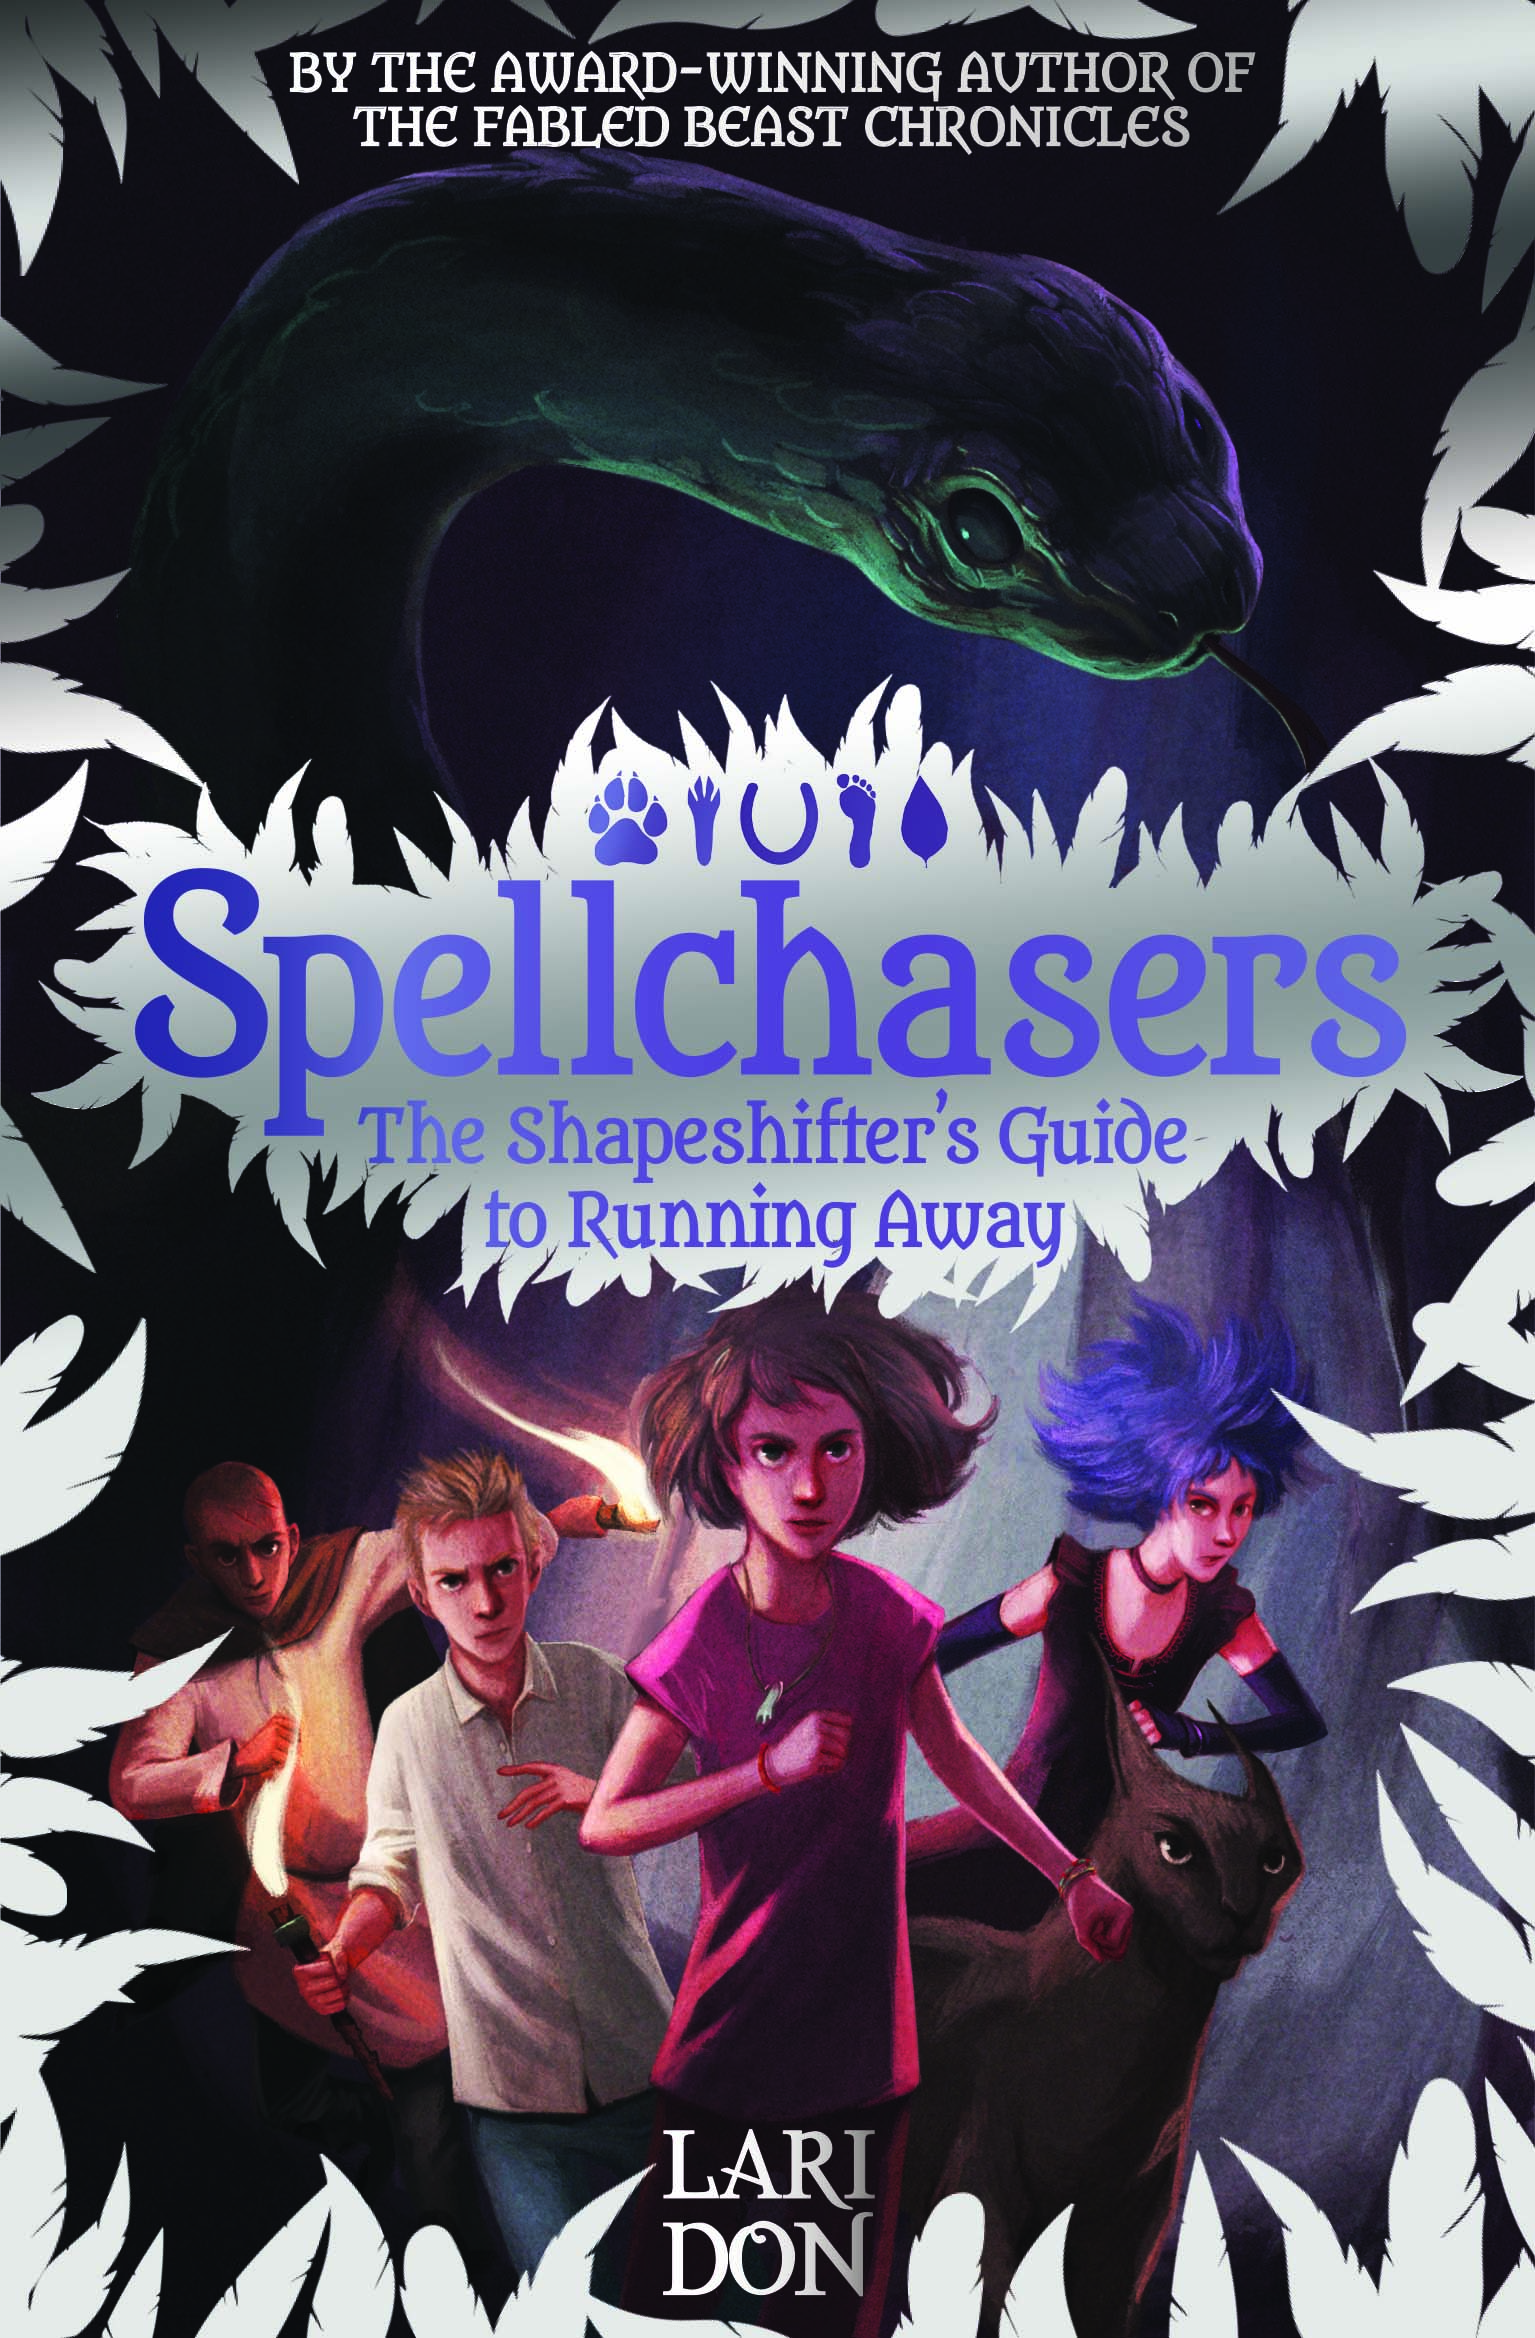 donspellchasers2-shapeshiftersguide